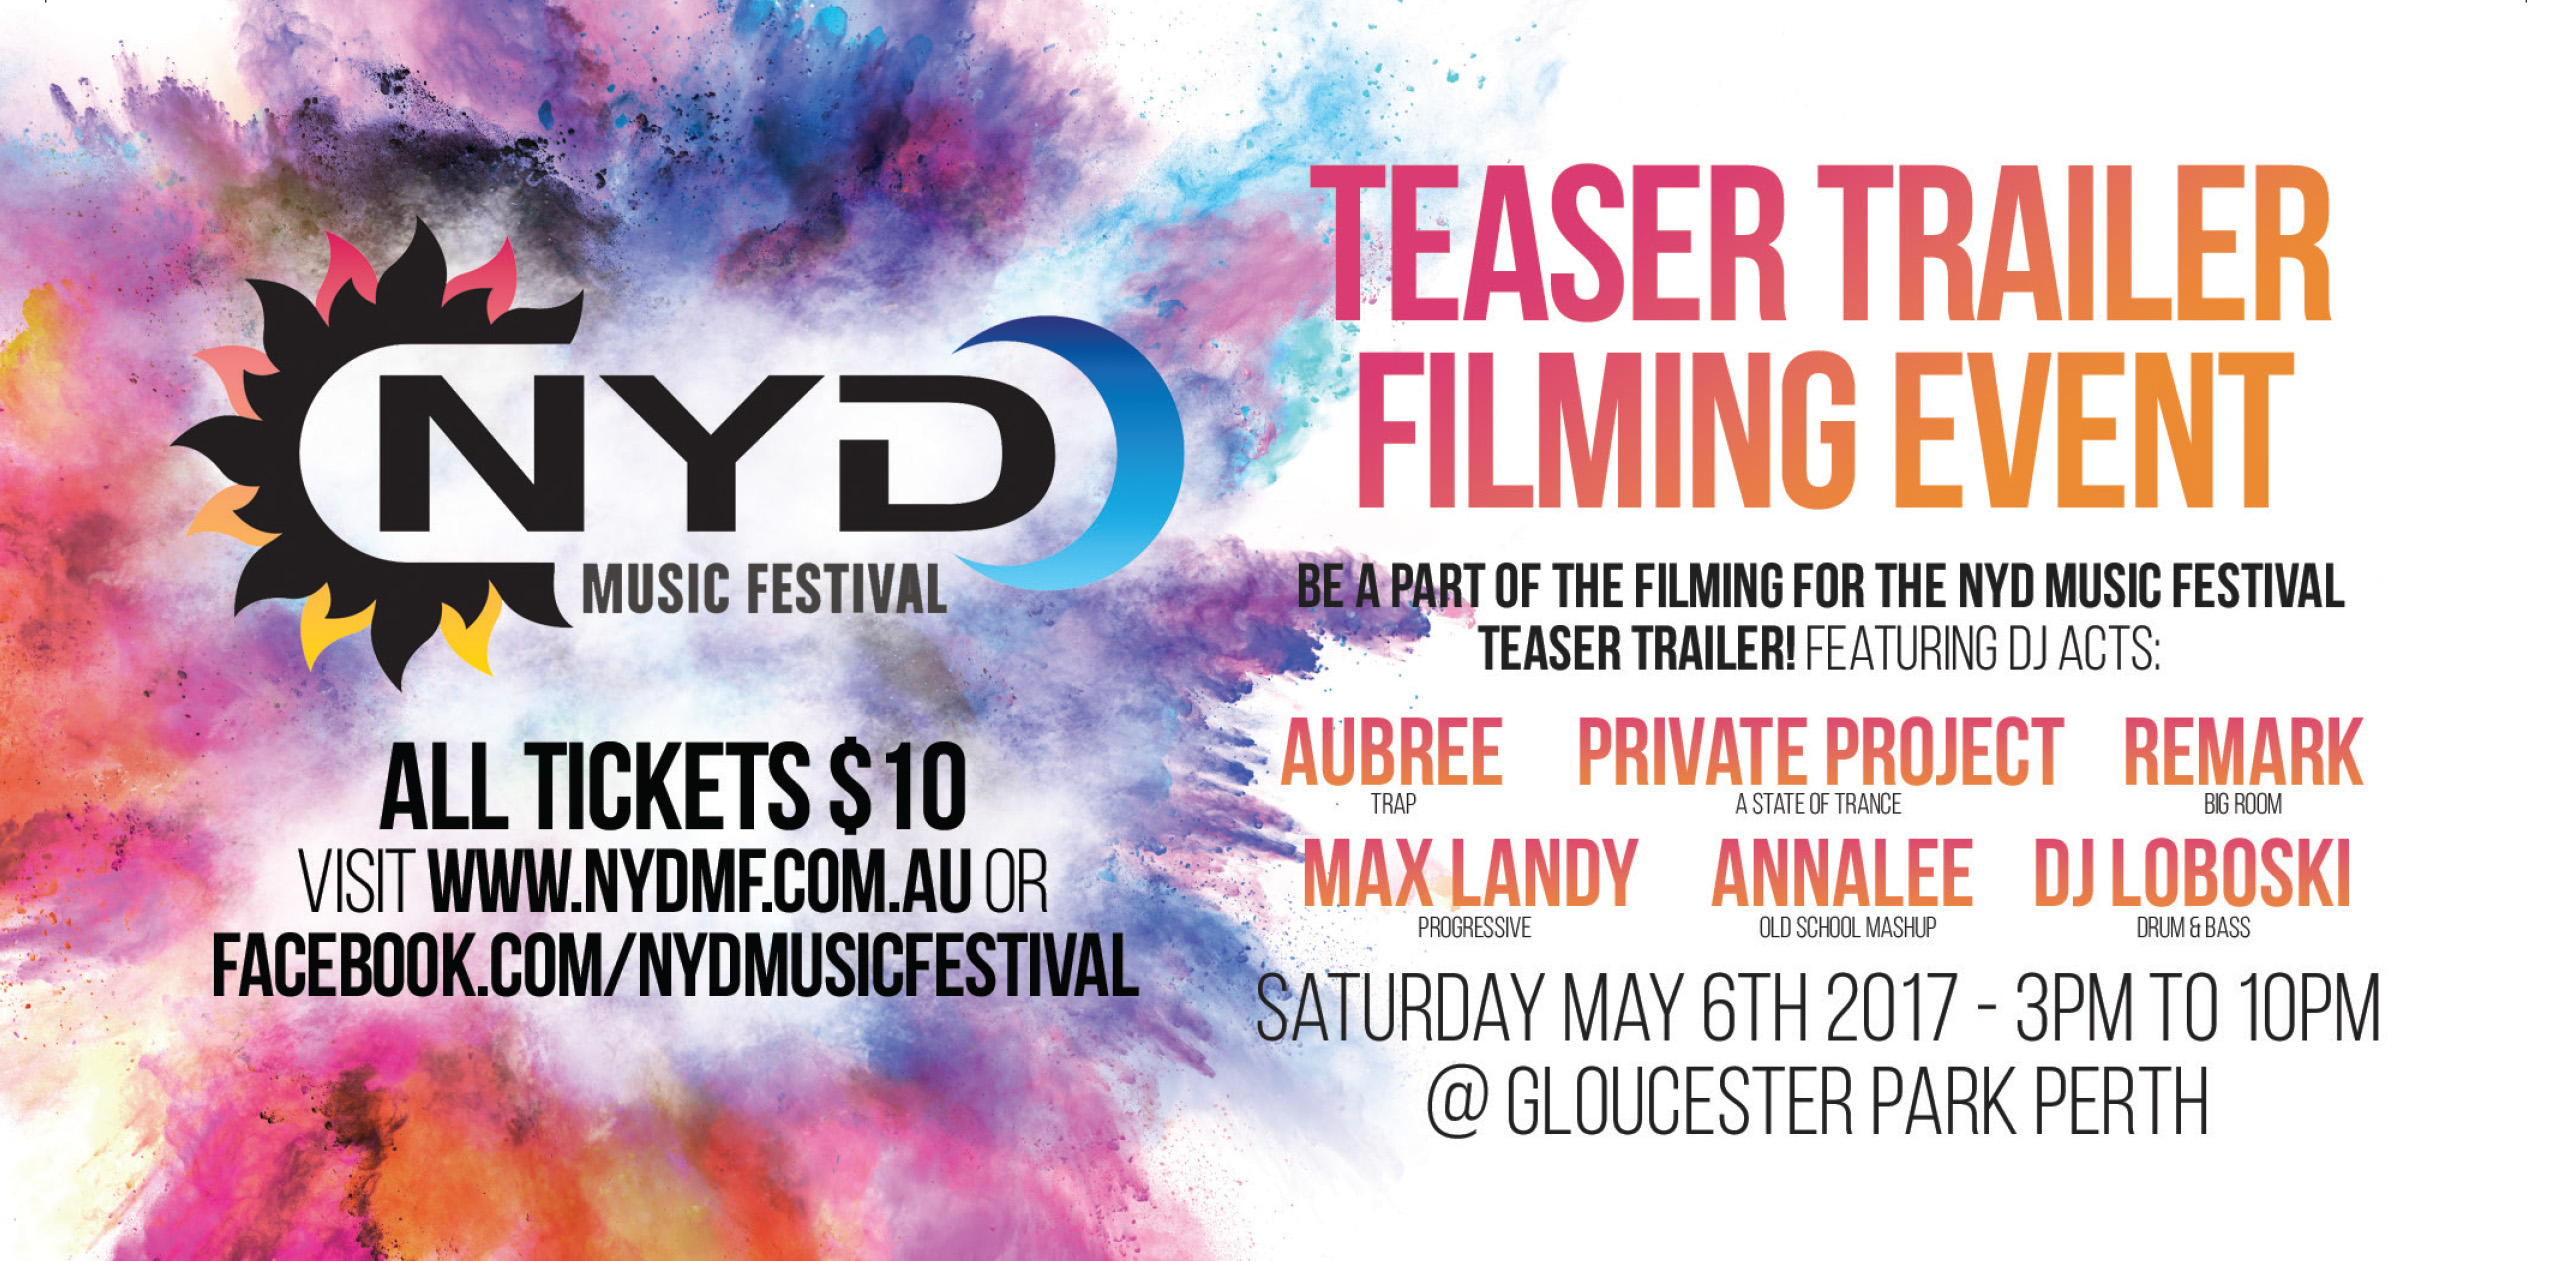 Tickets for NYD Music Festival Teaser Trailer Filming in East Perth from Ticketbooth